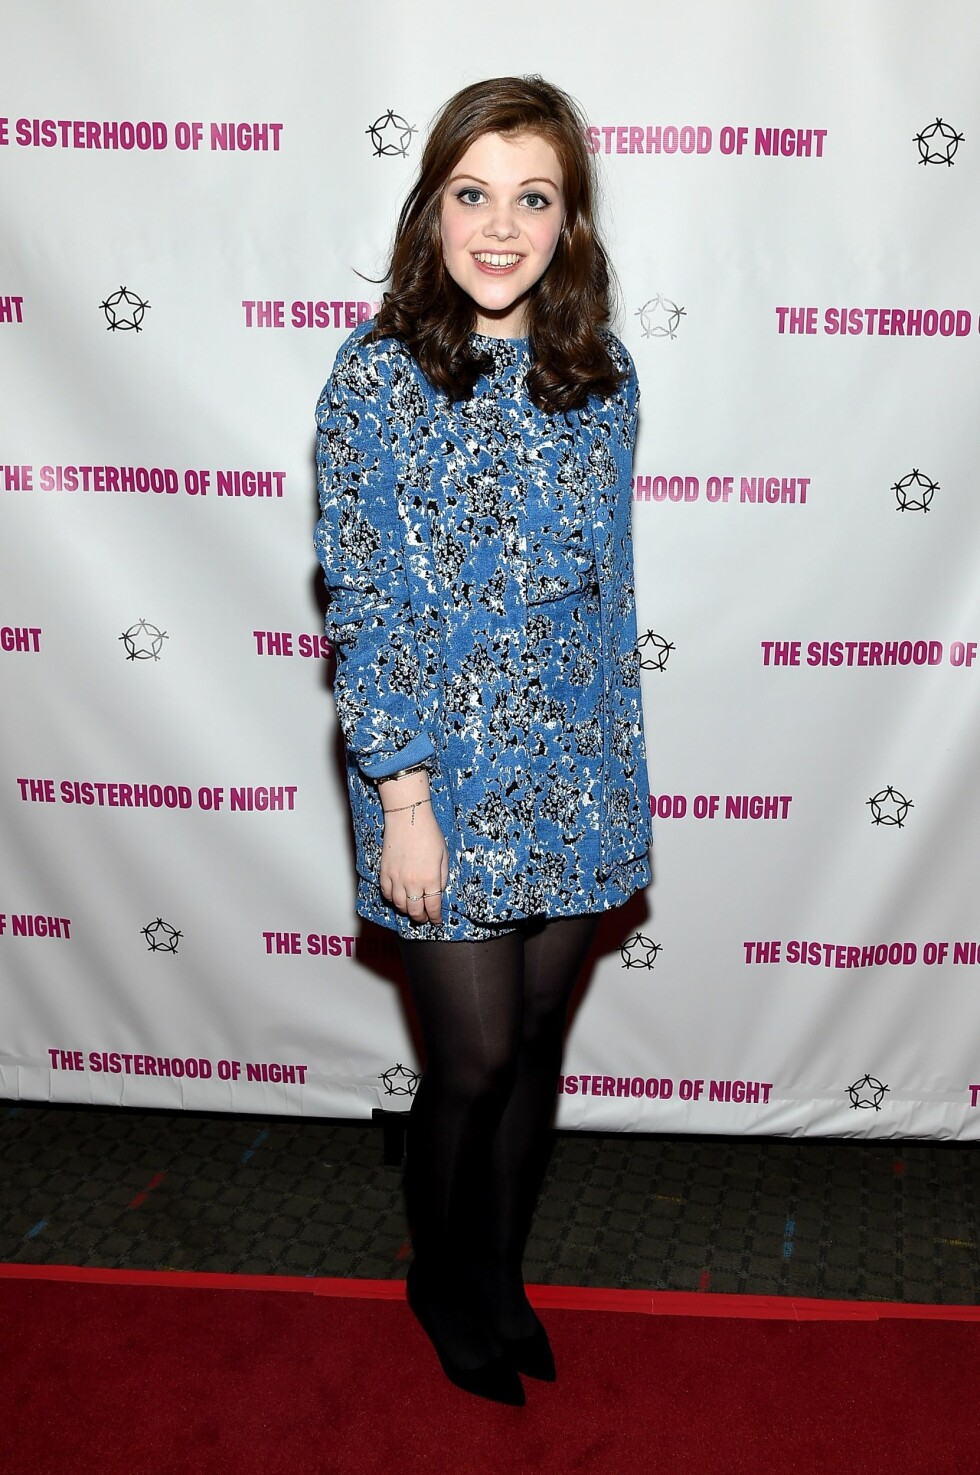 """NEW YORK, NY - APRIL 02: Actress Georgie Henley attends """"The Sisterhood Of Night"""" NY Premiere and After Party on April 2, 2015 in New York City.   Mike Coppola/Getty Images for Evenstar Films/AFP == FOR NEWSPAPERS, INTERNET, TELCOS & TELEVISION USE  data-cke-saved-ONLY == ONLY == Foto: Afp"""